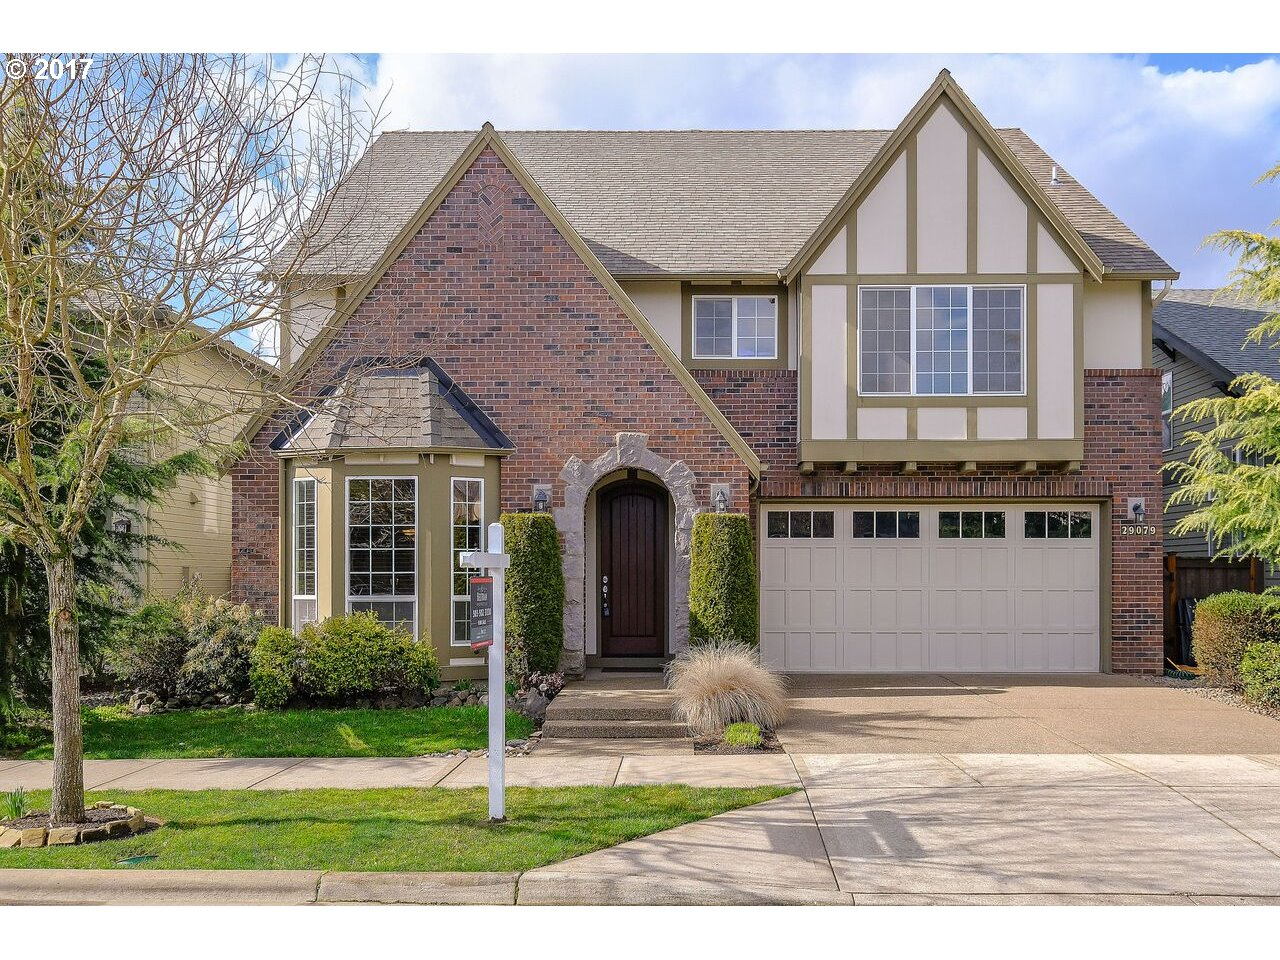 29079 SW MONTE CARLO AVE, Wilsonville, OR 97070